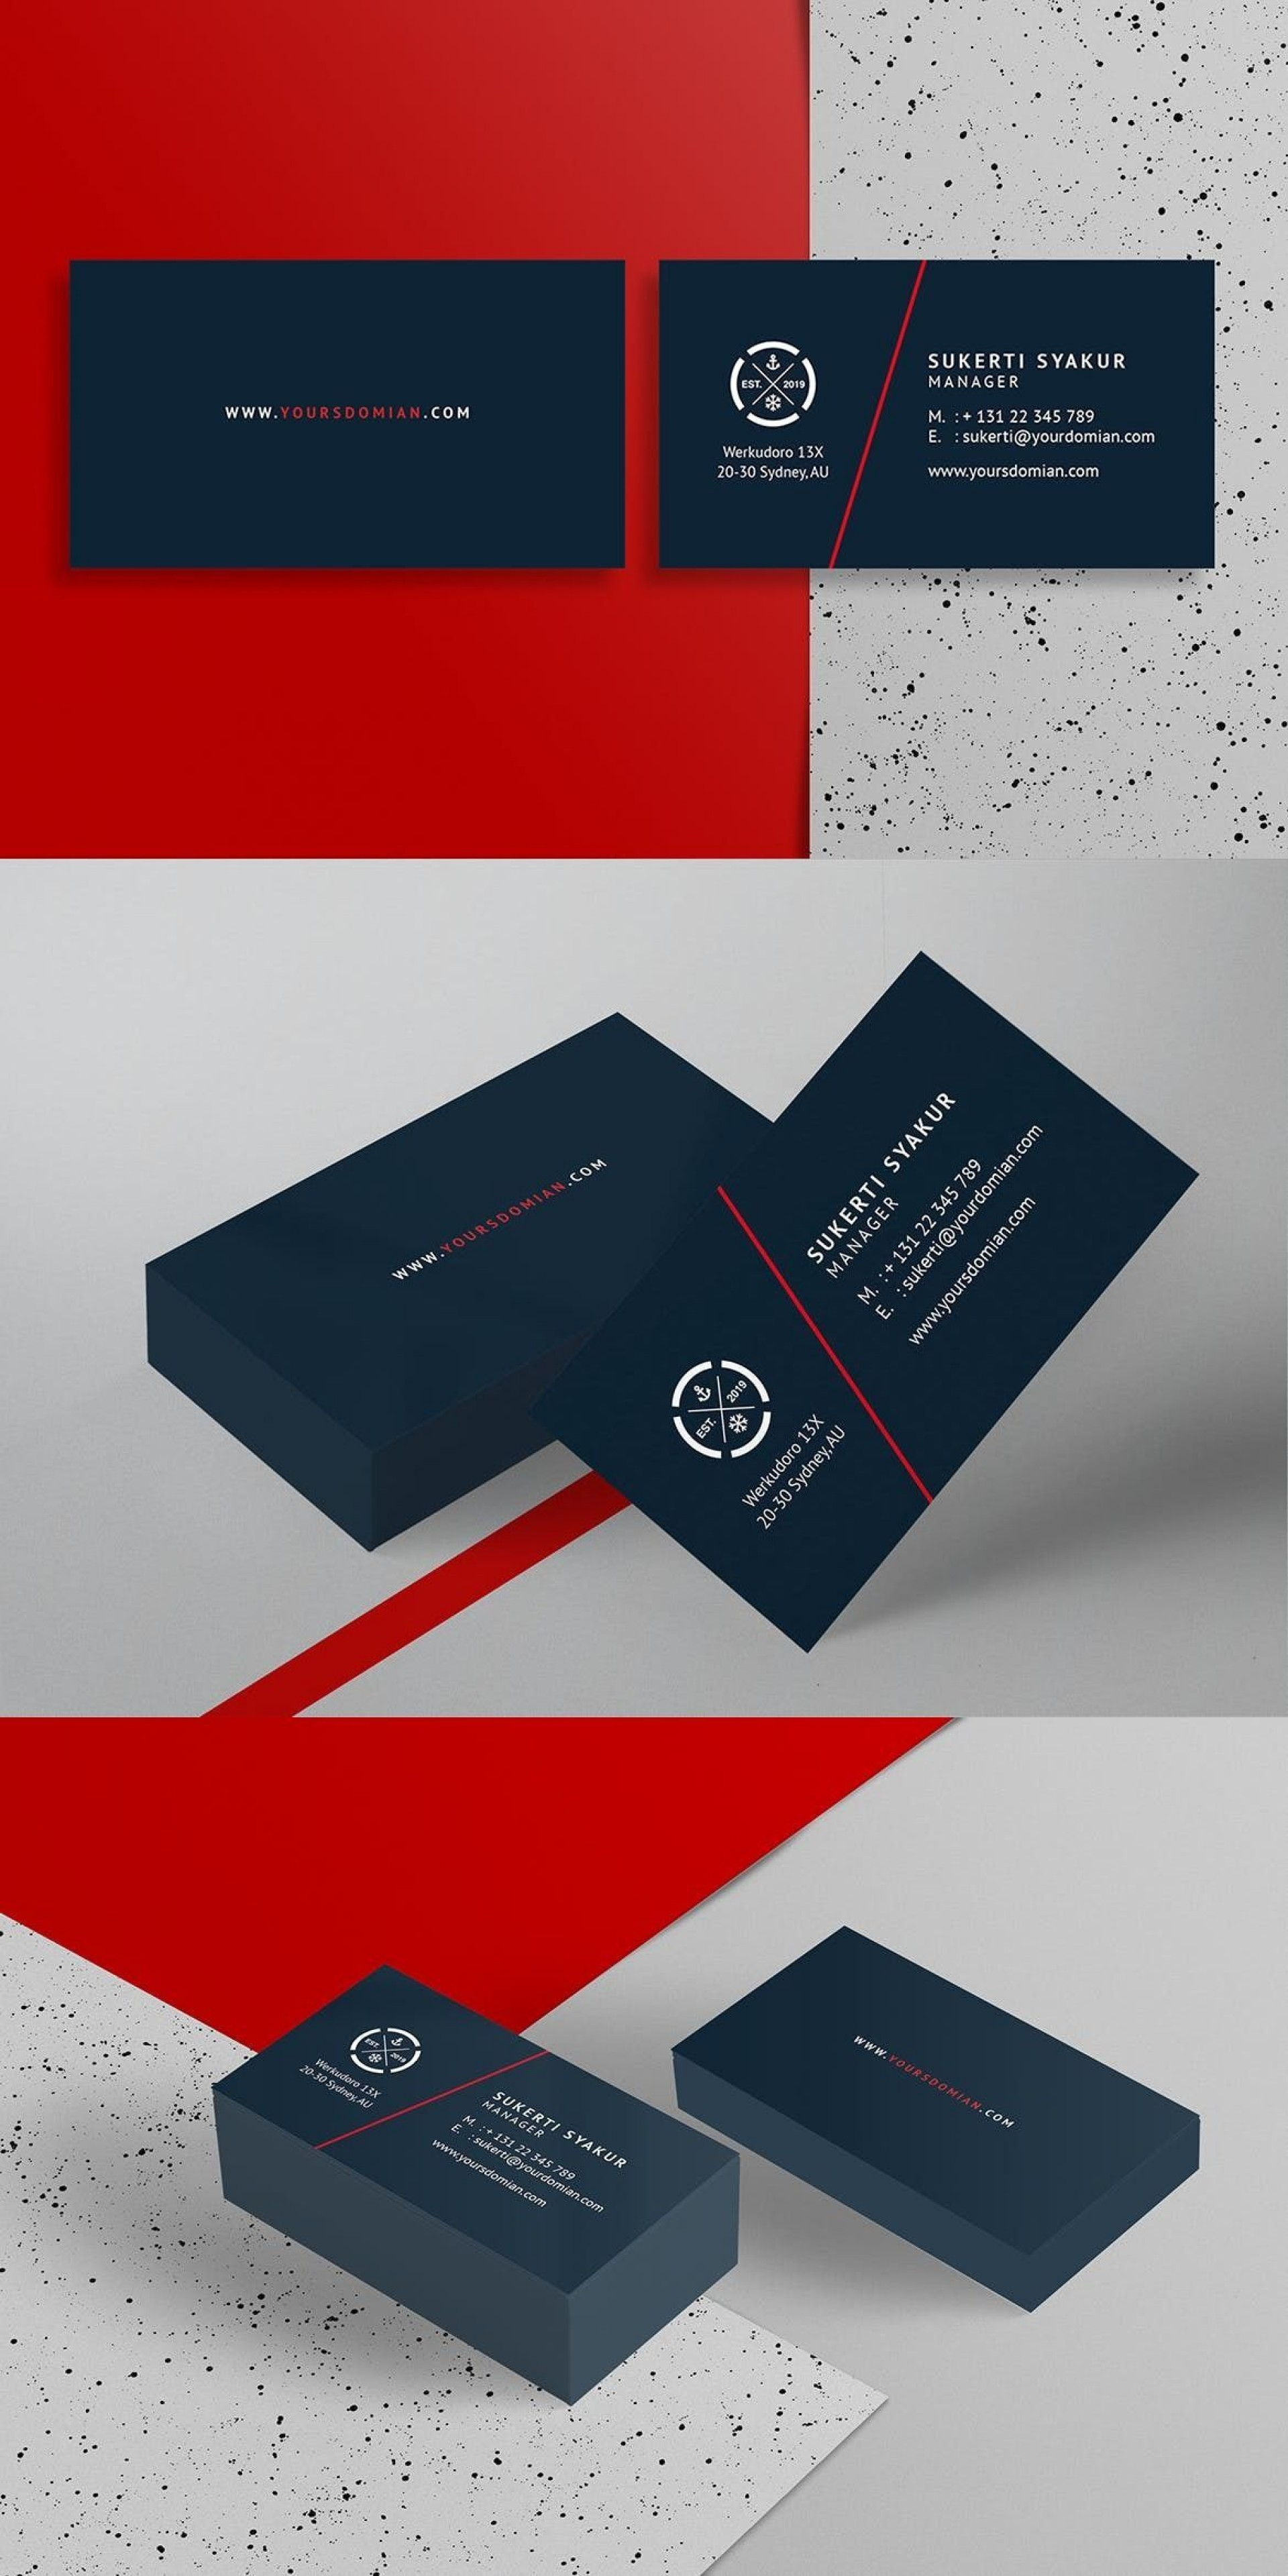 000 Remarkable Busines Card Layout Indesign High Definition  Size Template Free Download Cs61920